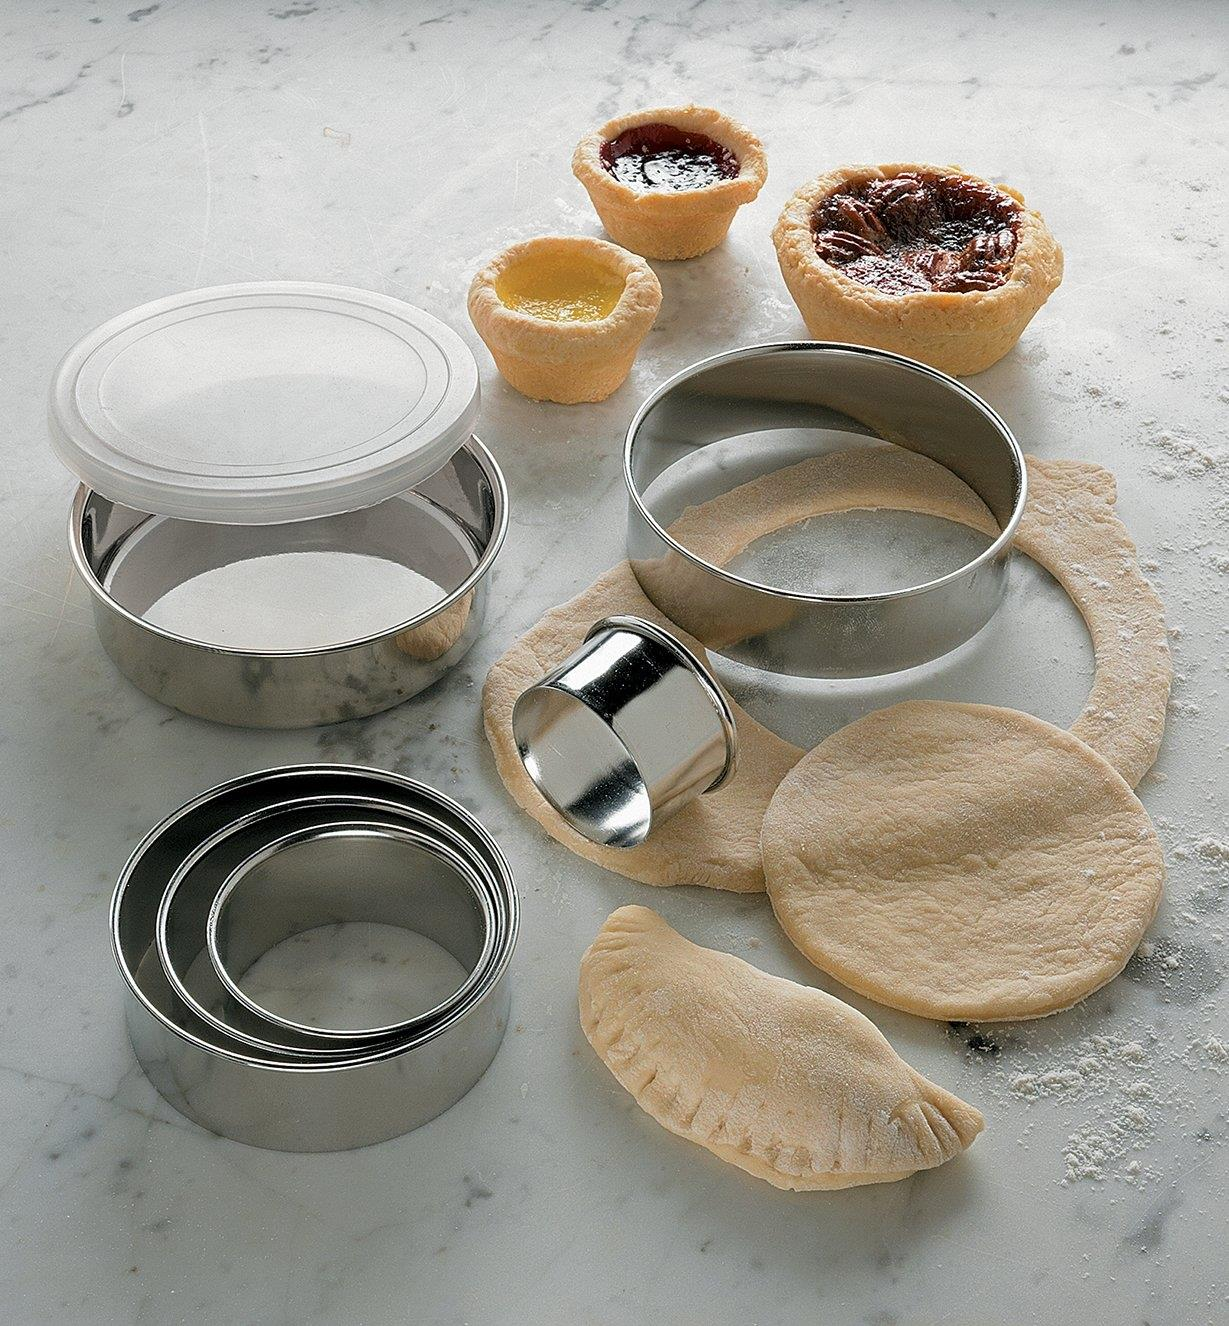 Stainless Steel Pastry Cutters on a counter being used to cut pastry circles, with baked tarts in the background